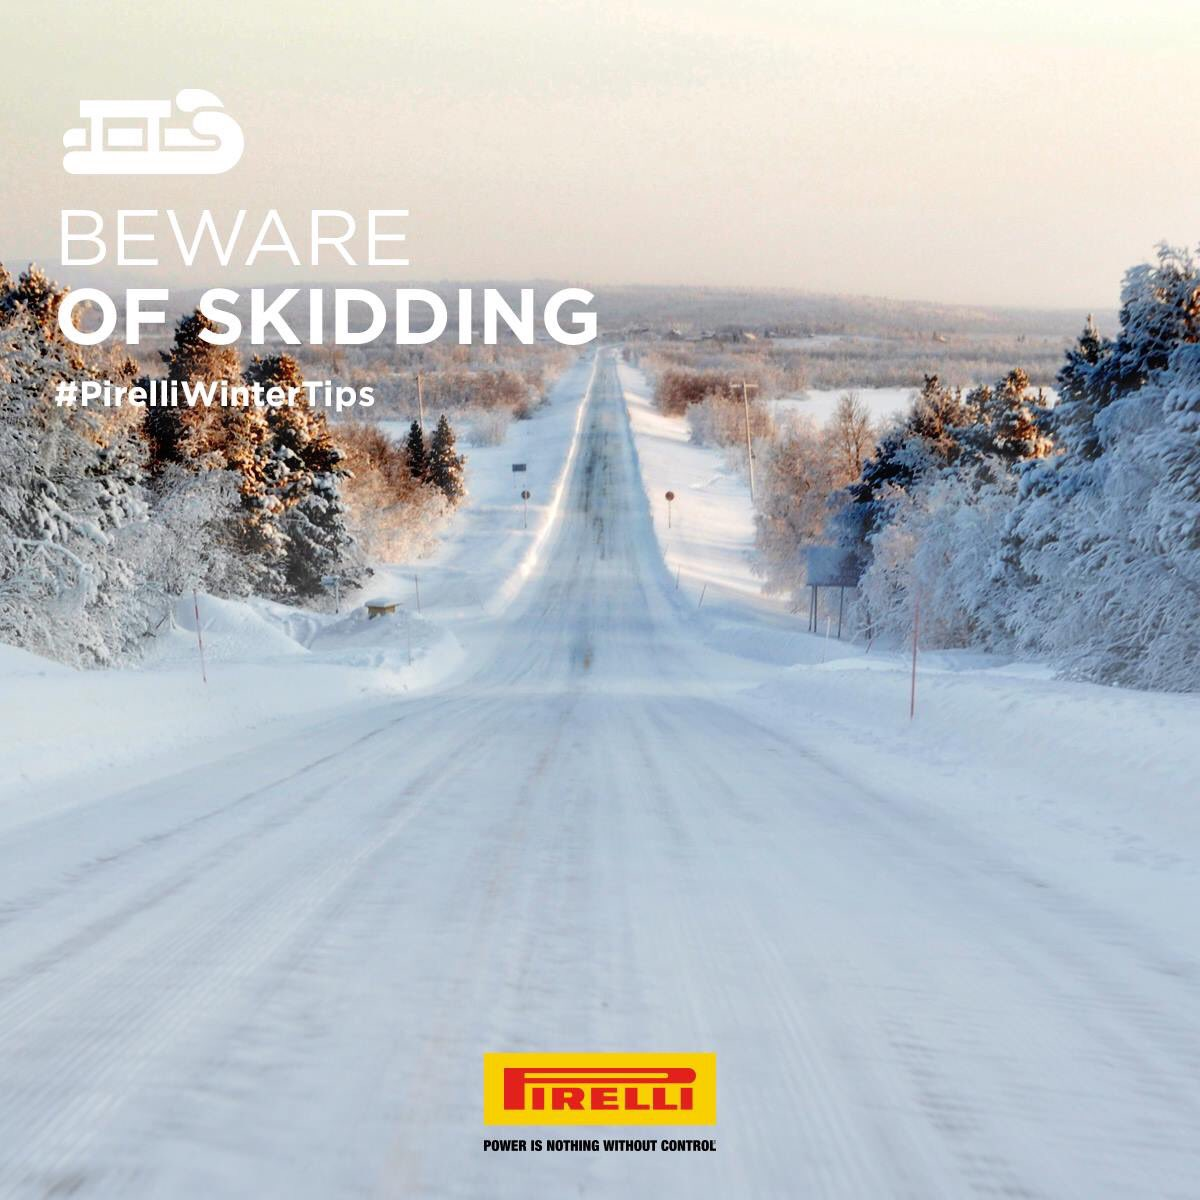 """Have you ever heard of the """"skidding effect""""? When driving downhill on snowy roads, lift your foot off the brake and exploit the engine brake to slow down.  Discover more:  http://pirelli.com/global/en-ww/road/the-5-golden-rules-for-driving-on-snow…    #Pirelli #PirelliWinterTips #WinterTires #WeAreInControl"""